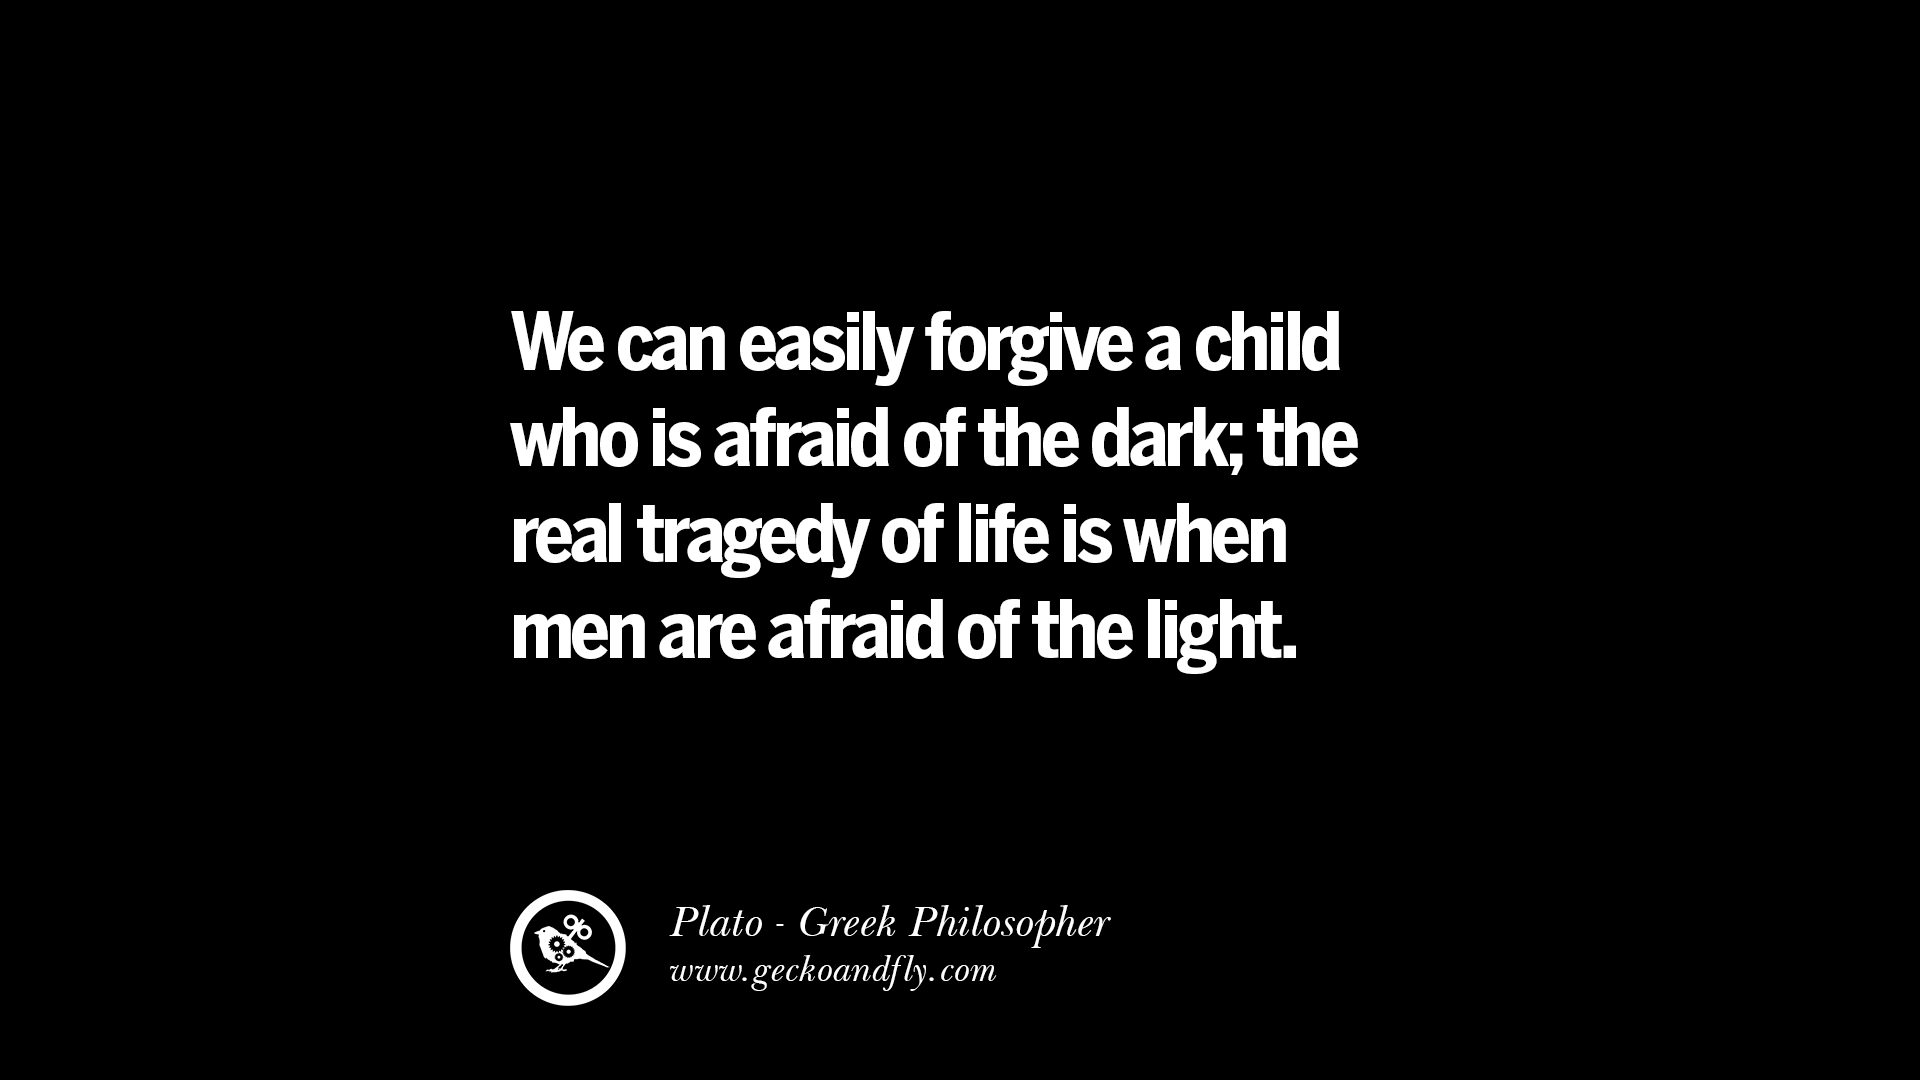 Inspirational Quotes About Loving Children 40 Famous Philosophical Quotesplato On Love Politics